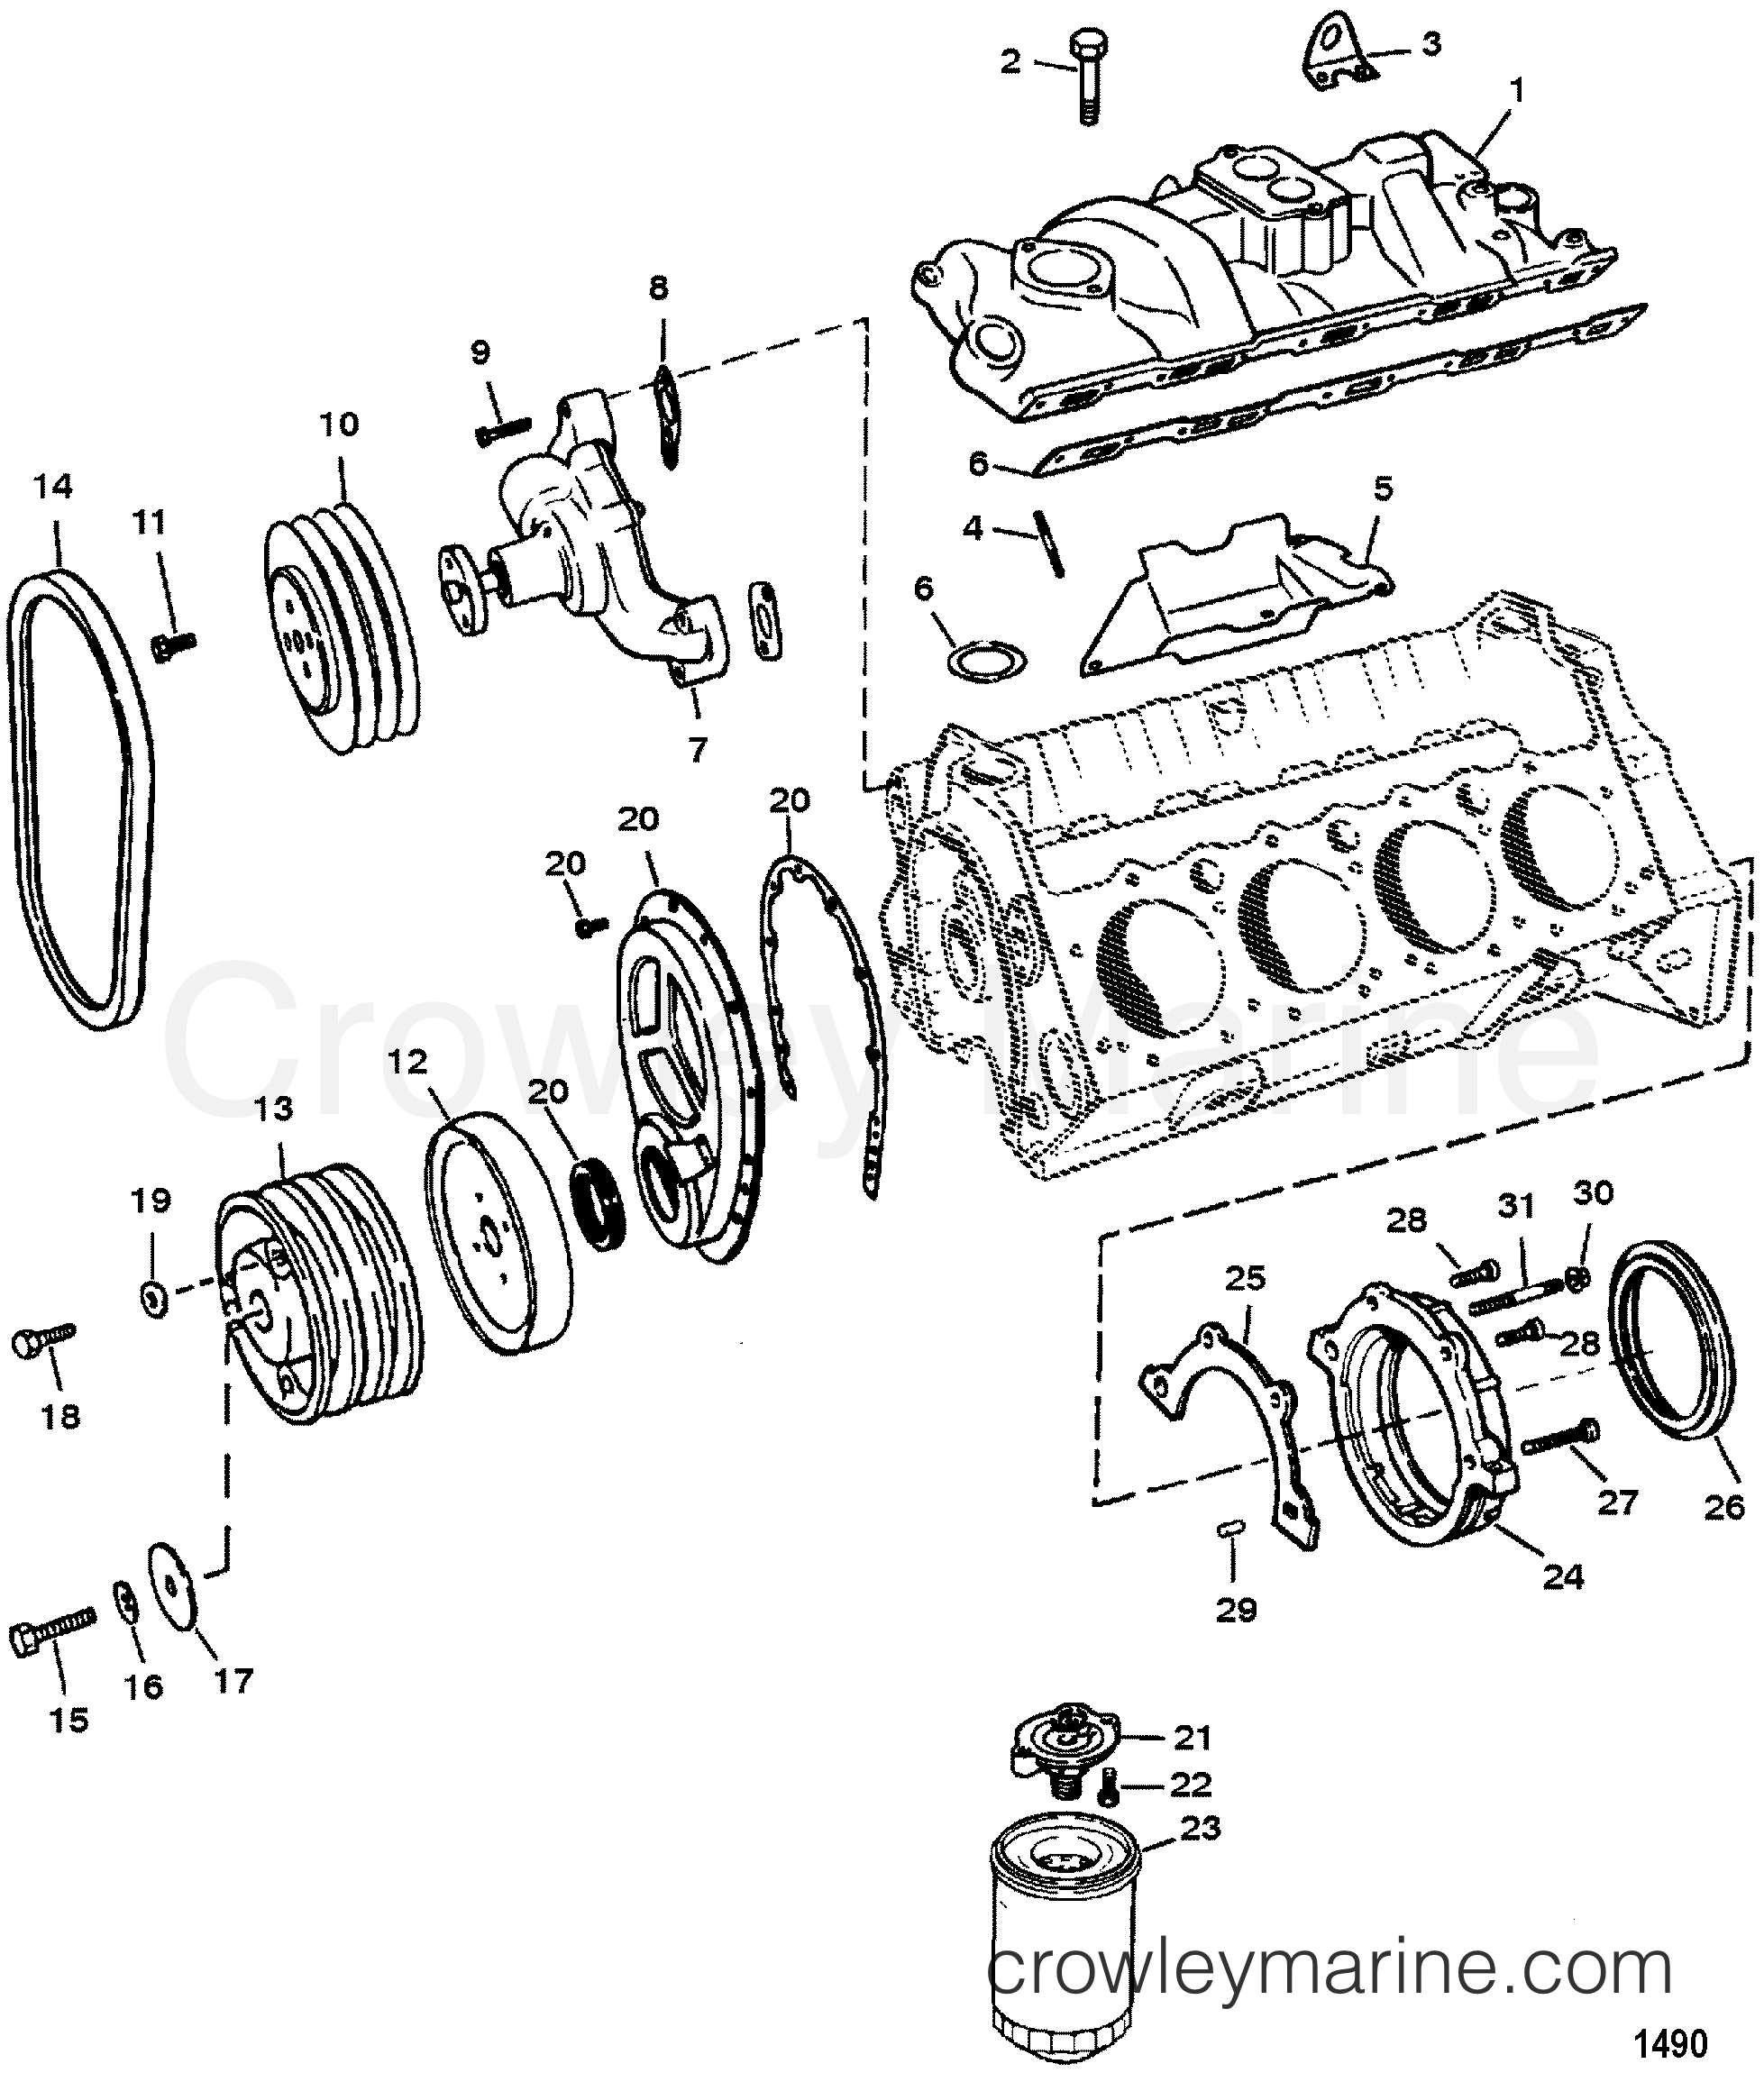 Gmc 5 7l V8 Engine Diagram